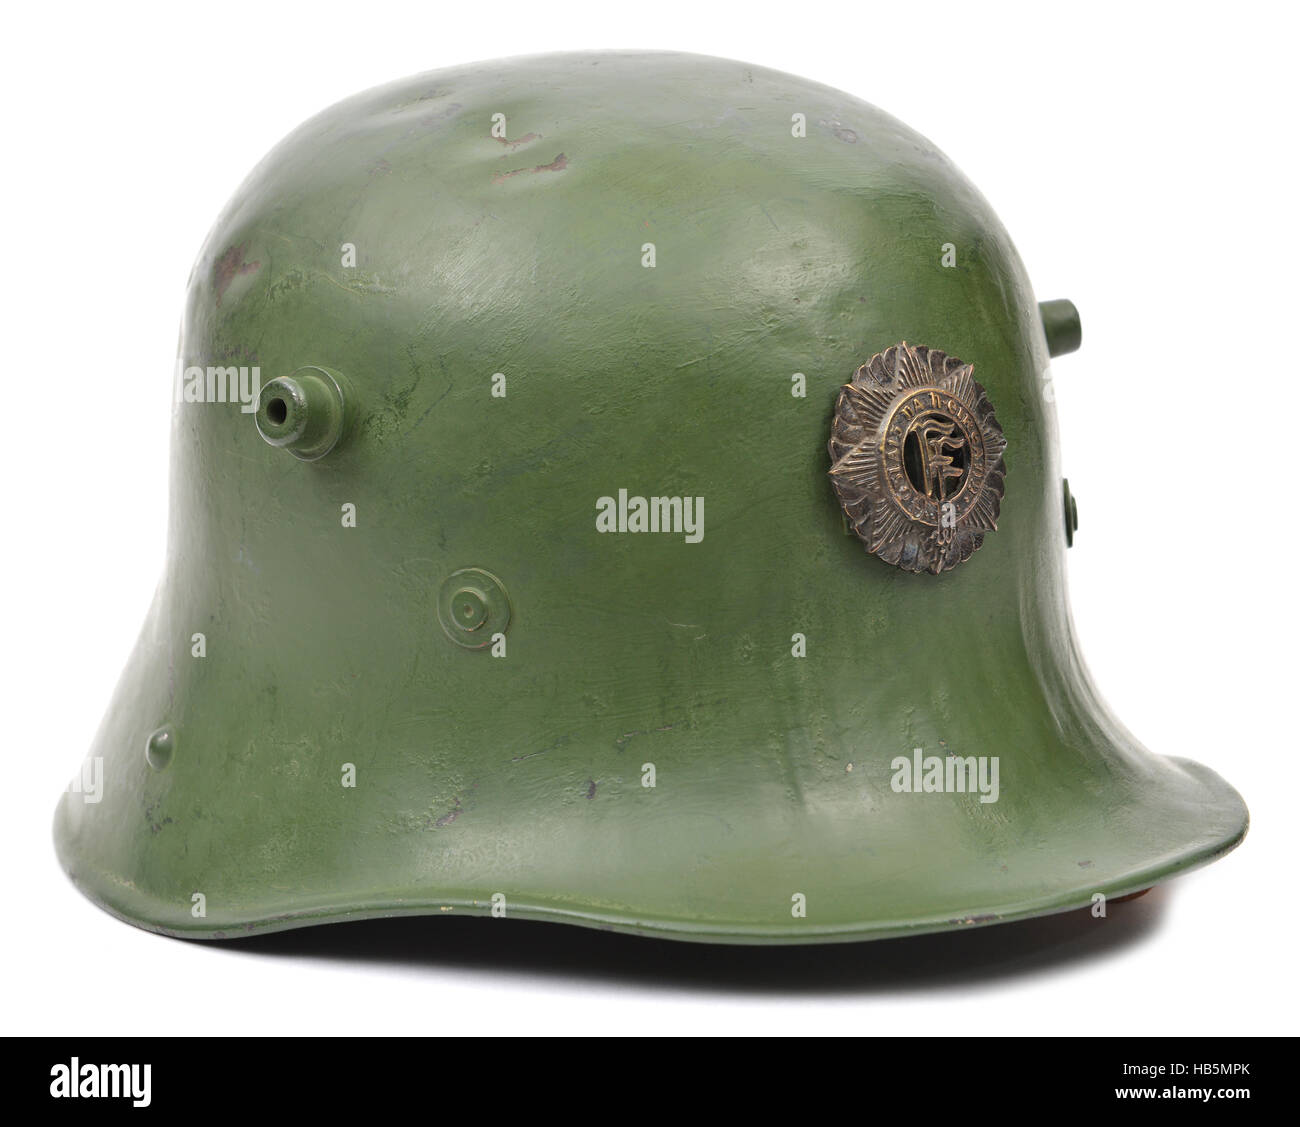 First World War late pattern German Army soldier's helmet - Stock Image